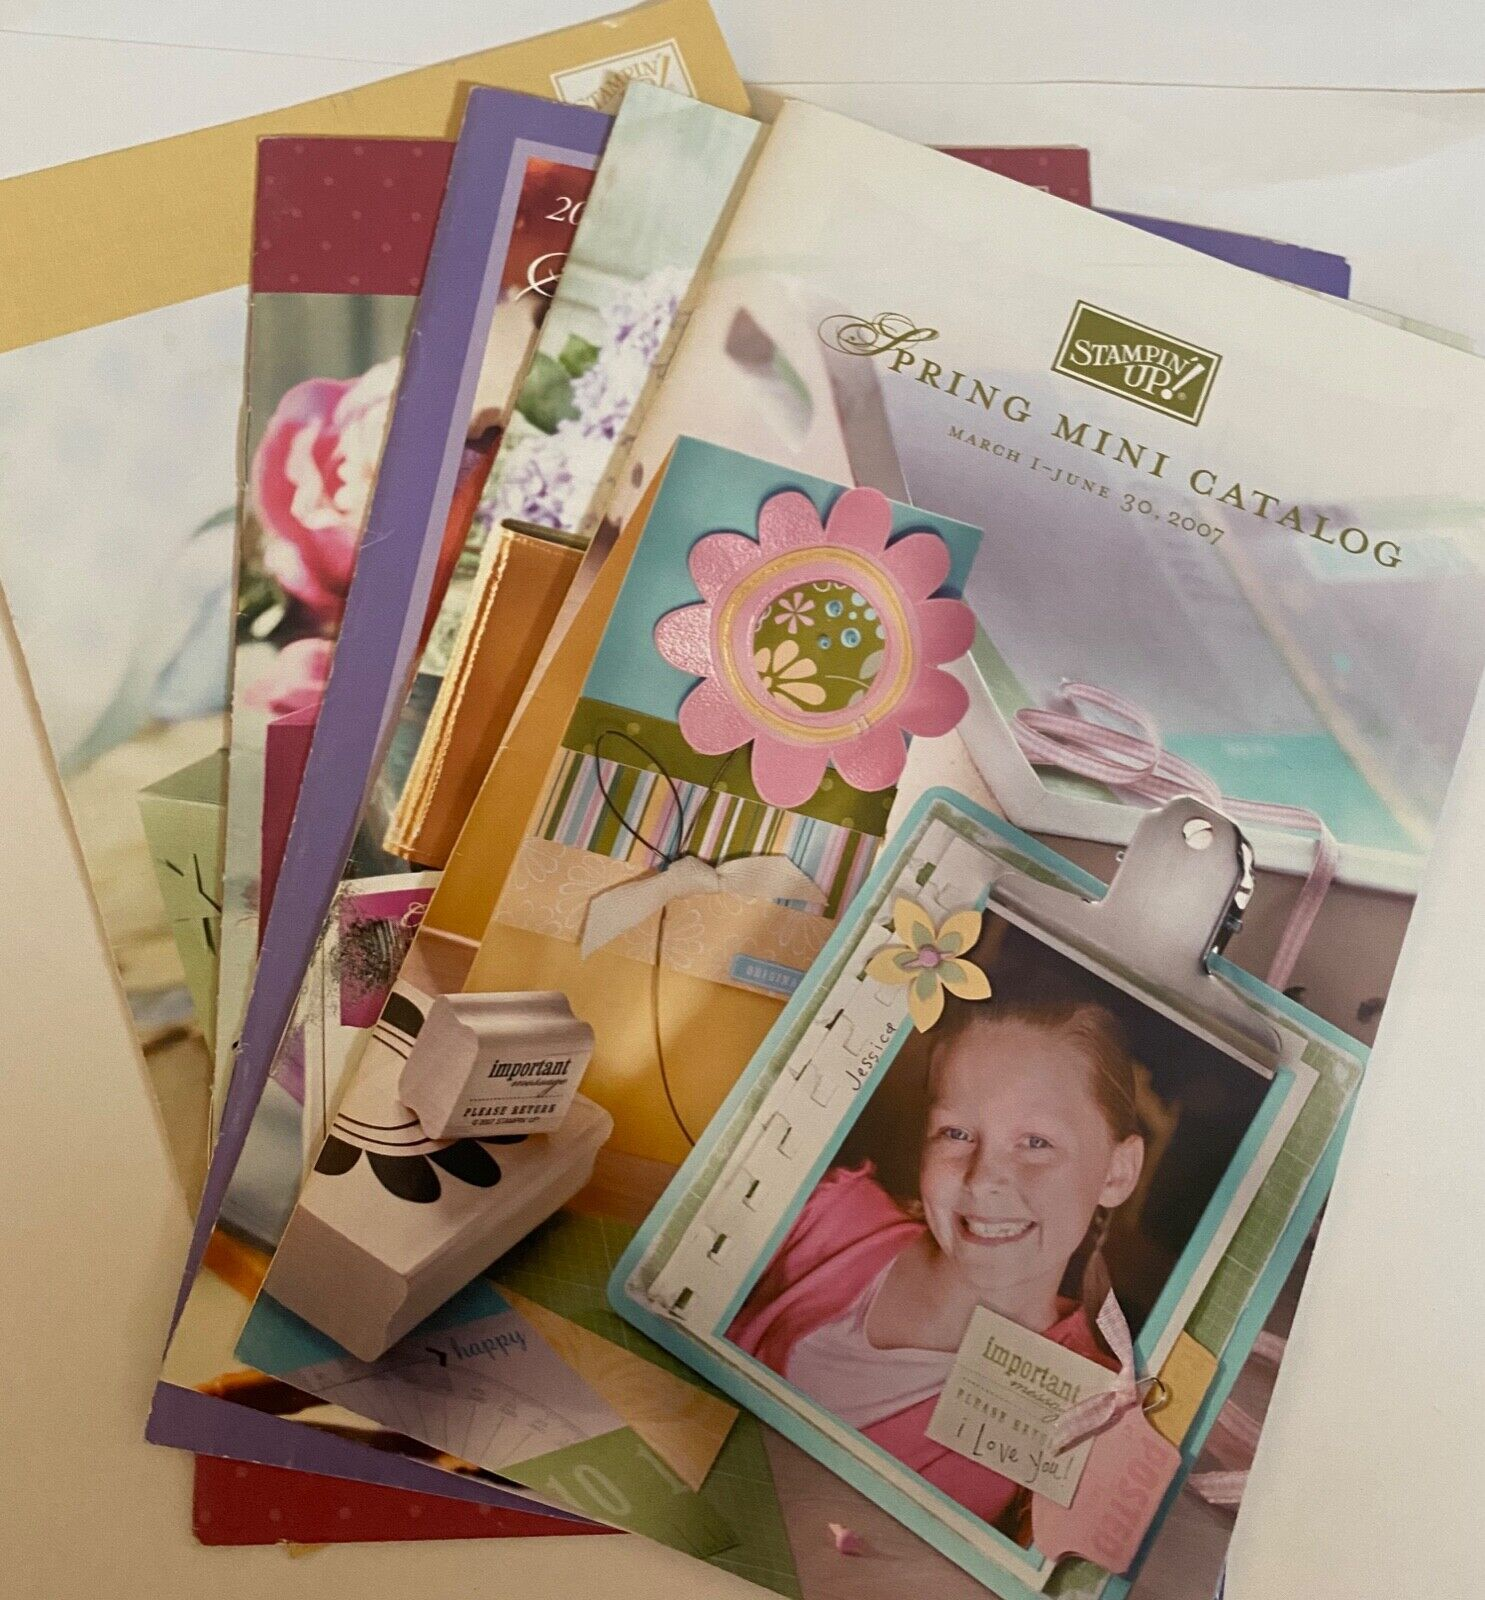 Stampin Up Retired Mini Catalogs Group Of Five Very Good Condition - $0.99